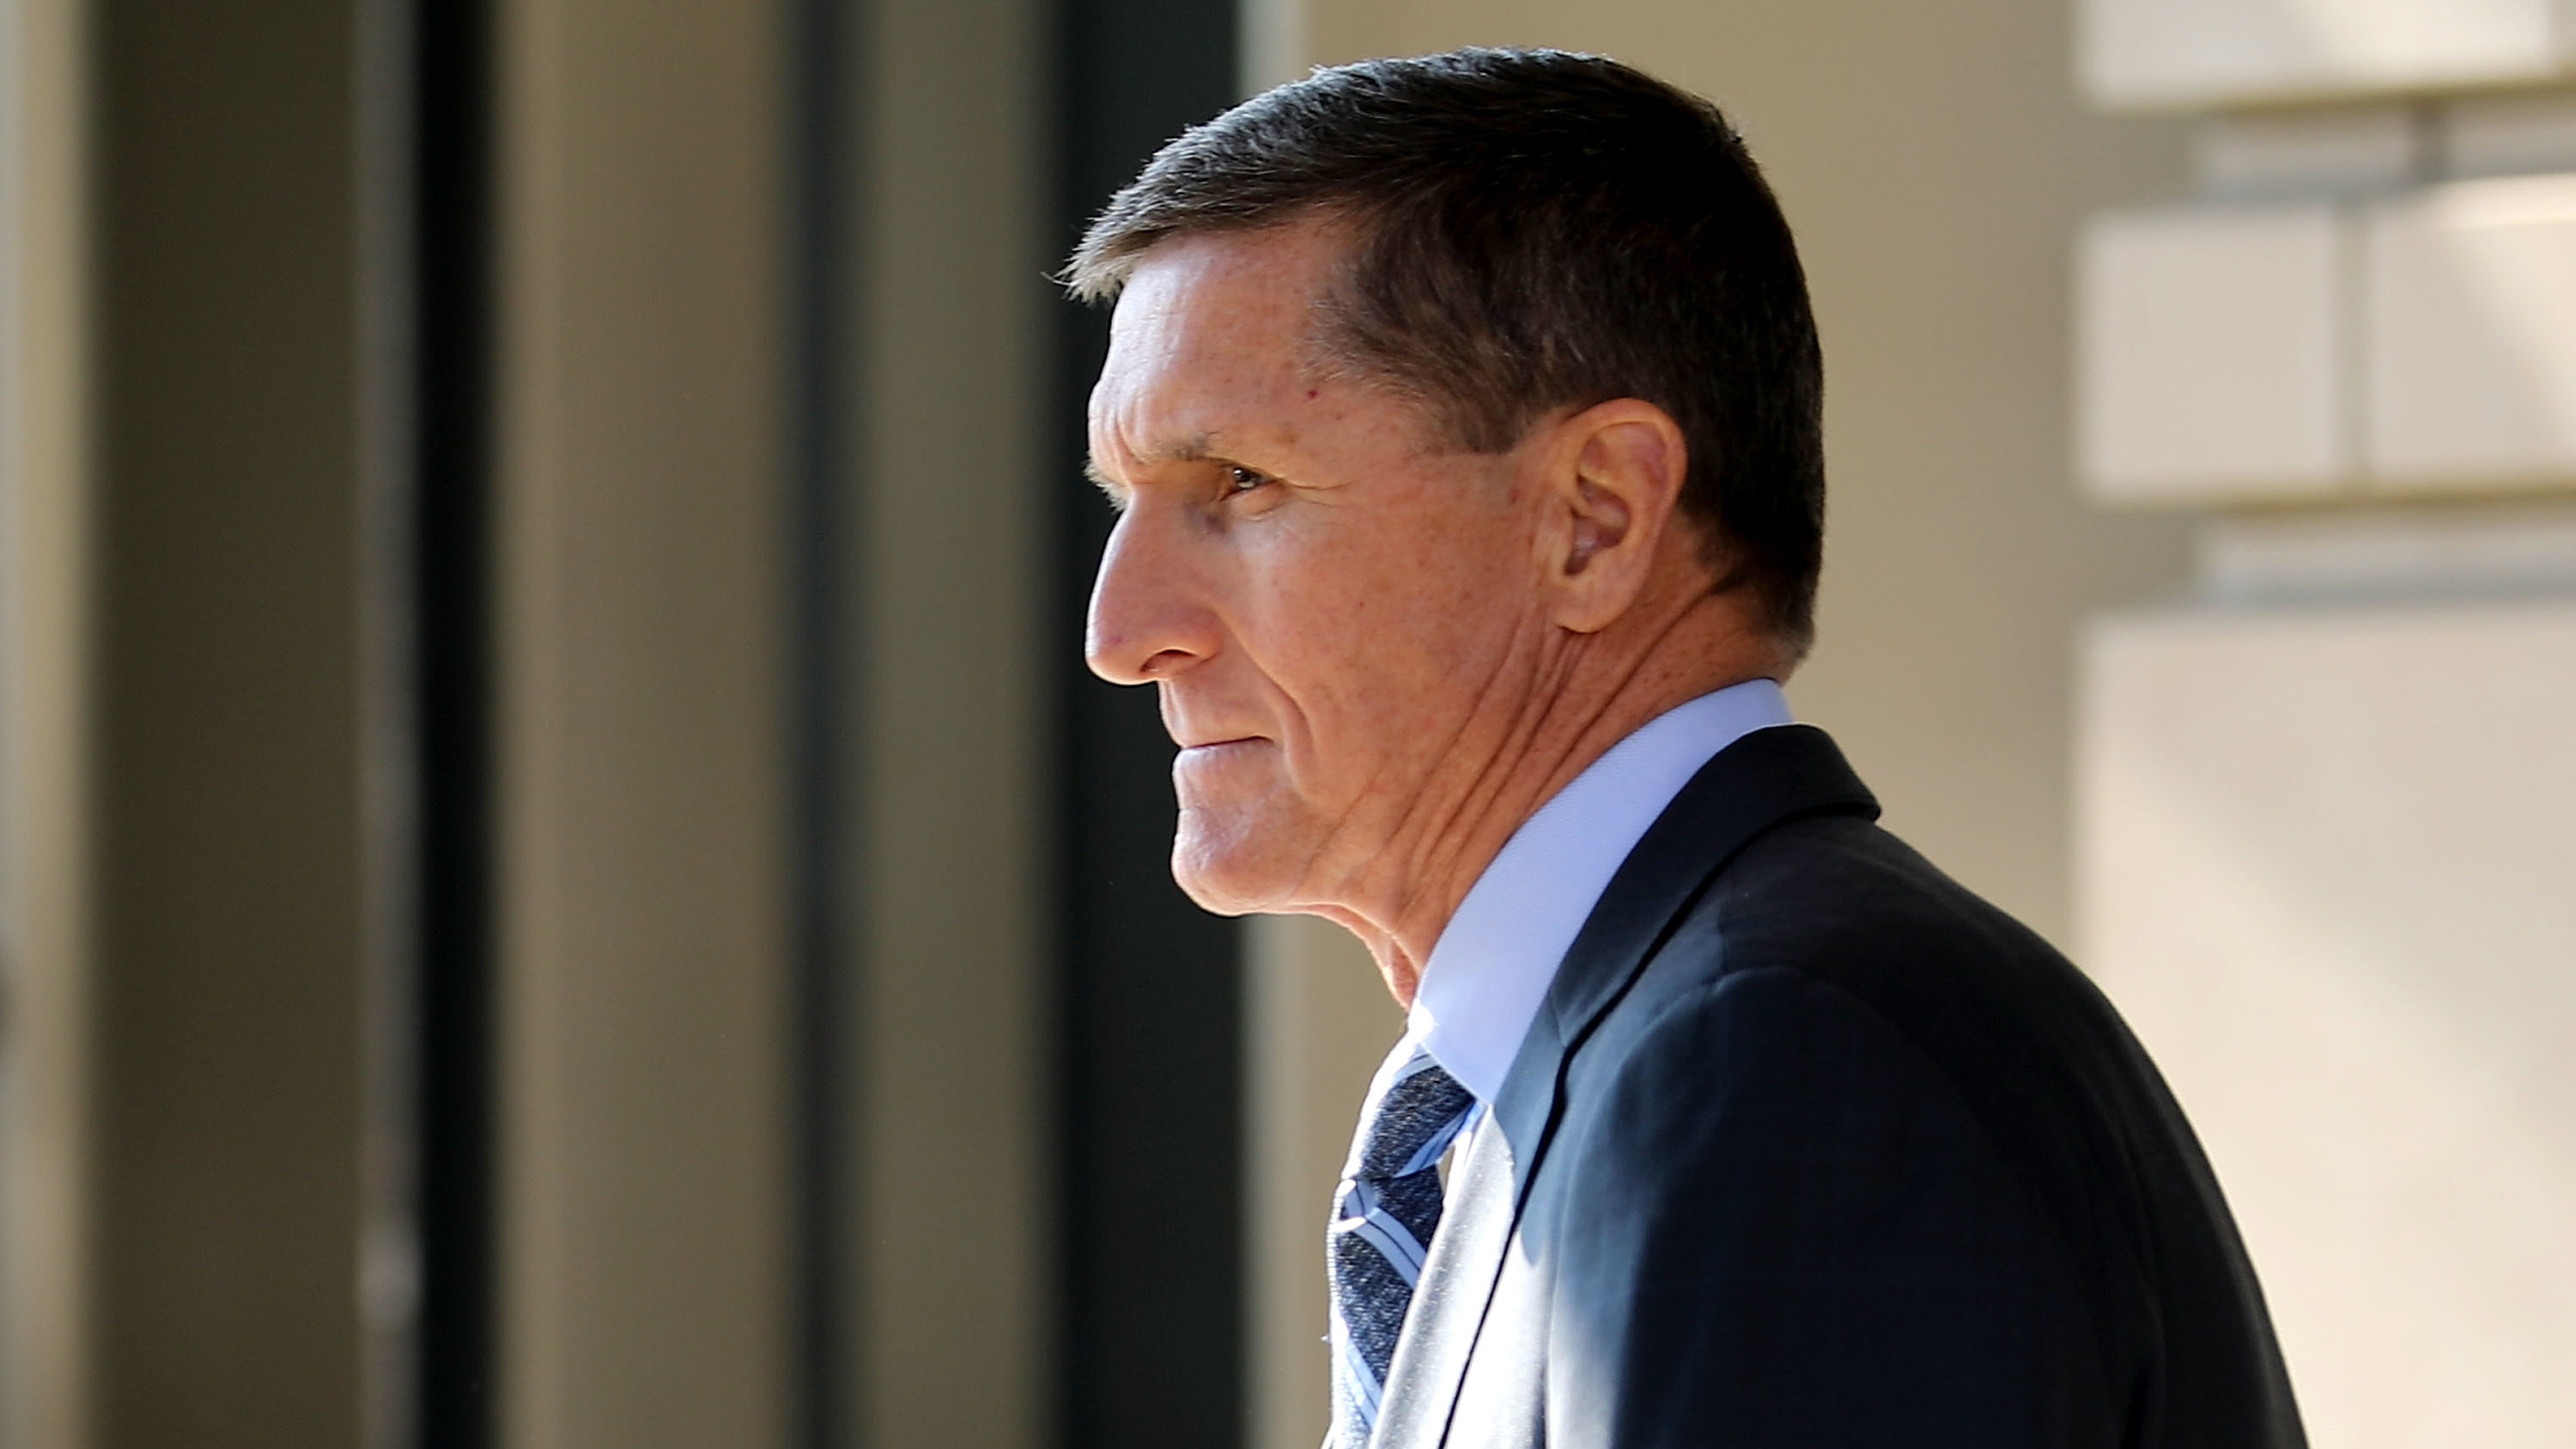 Whistleblower: Flynn said Russian Federation sanctions would be 'ripped up'